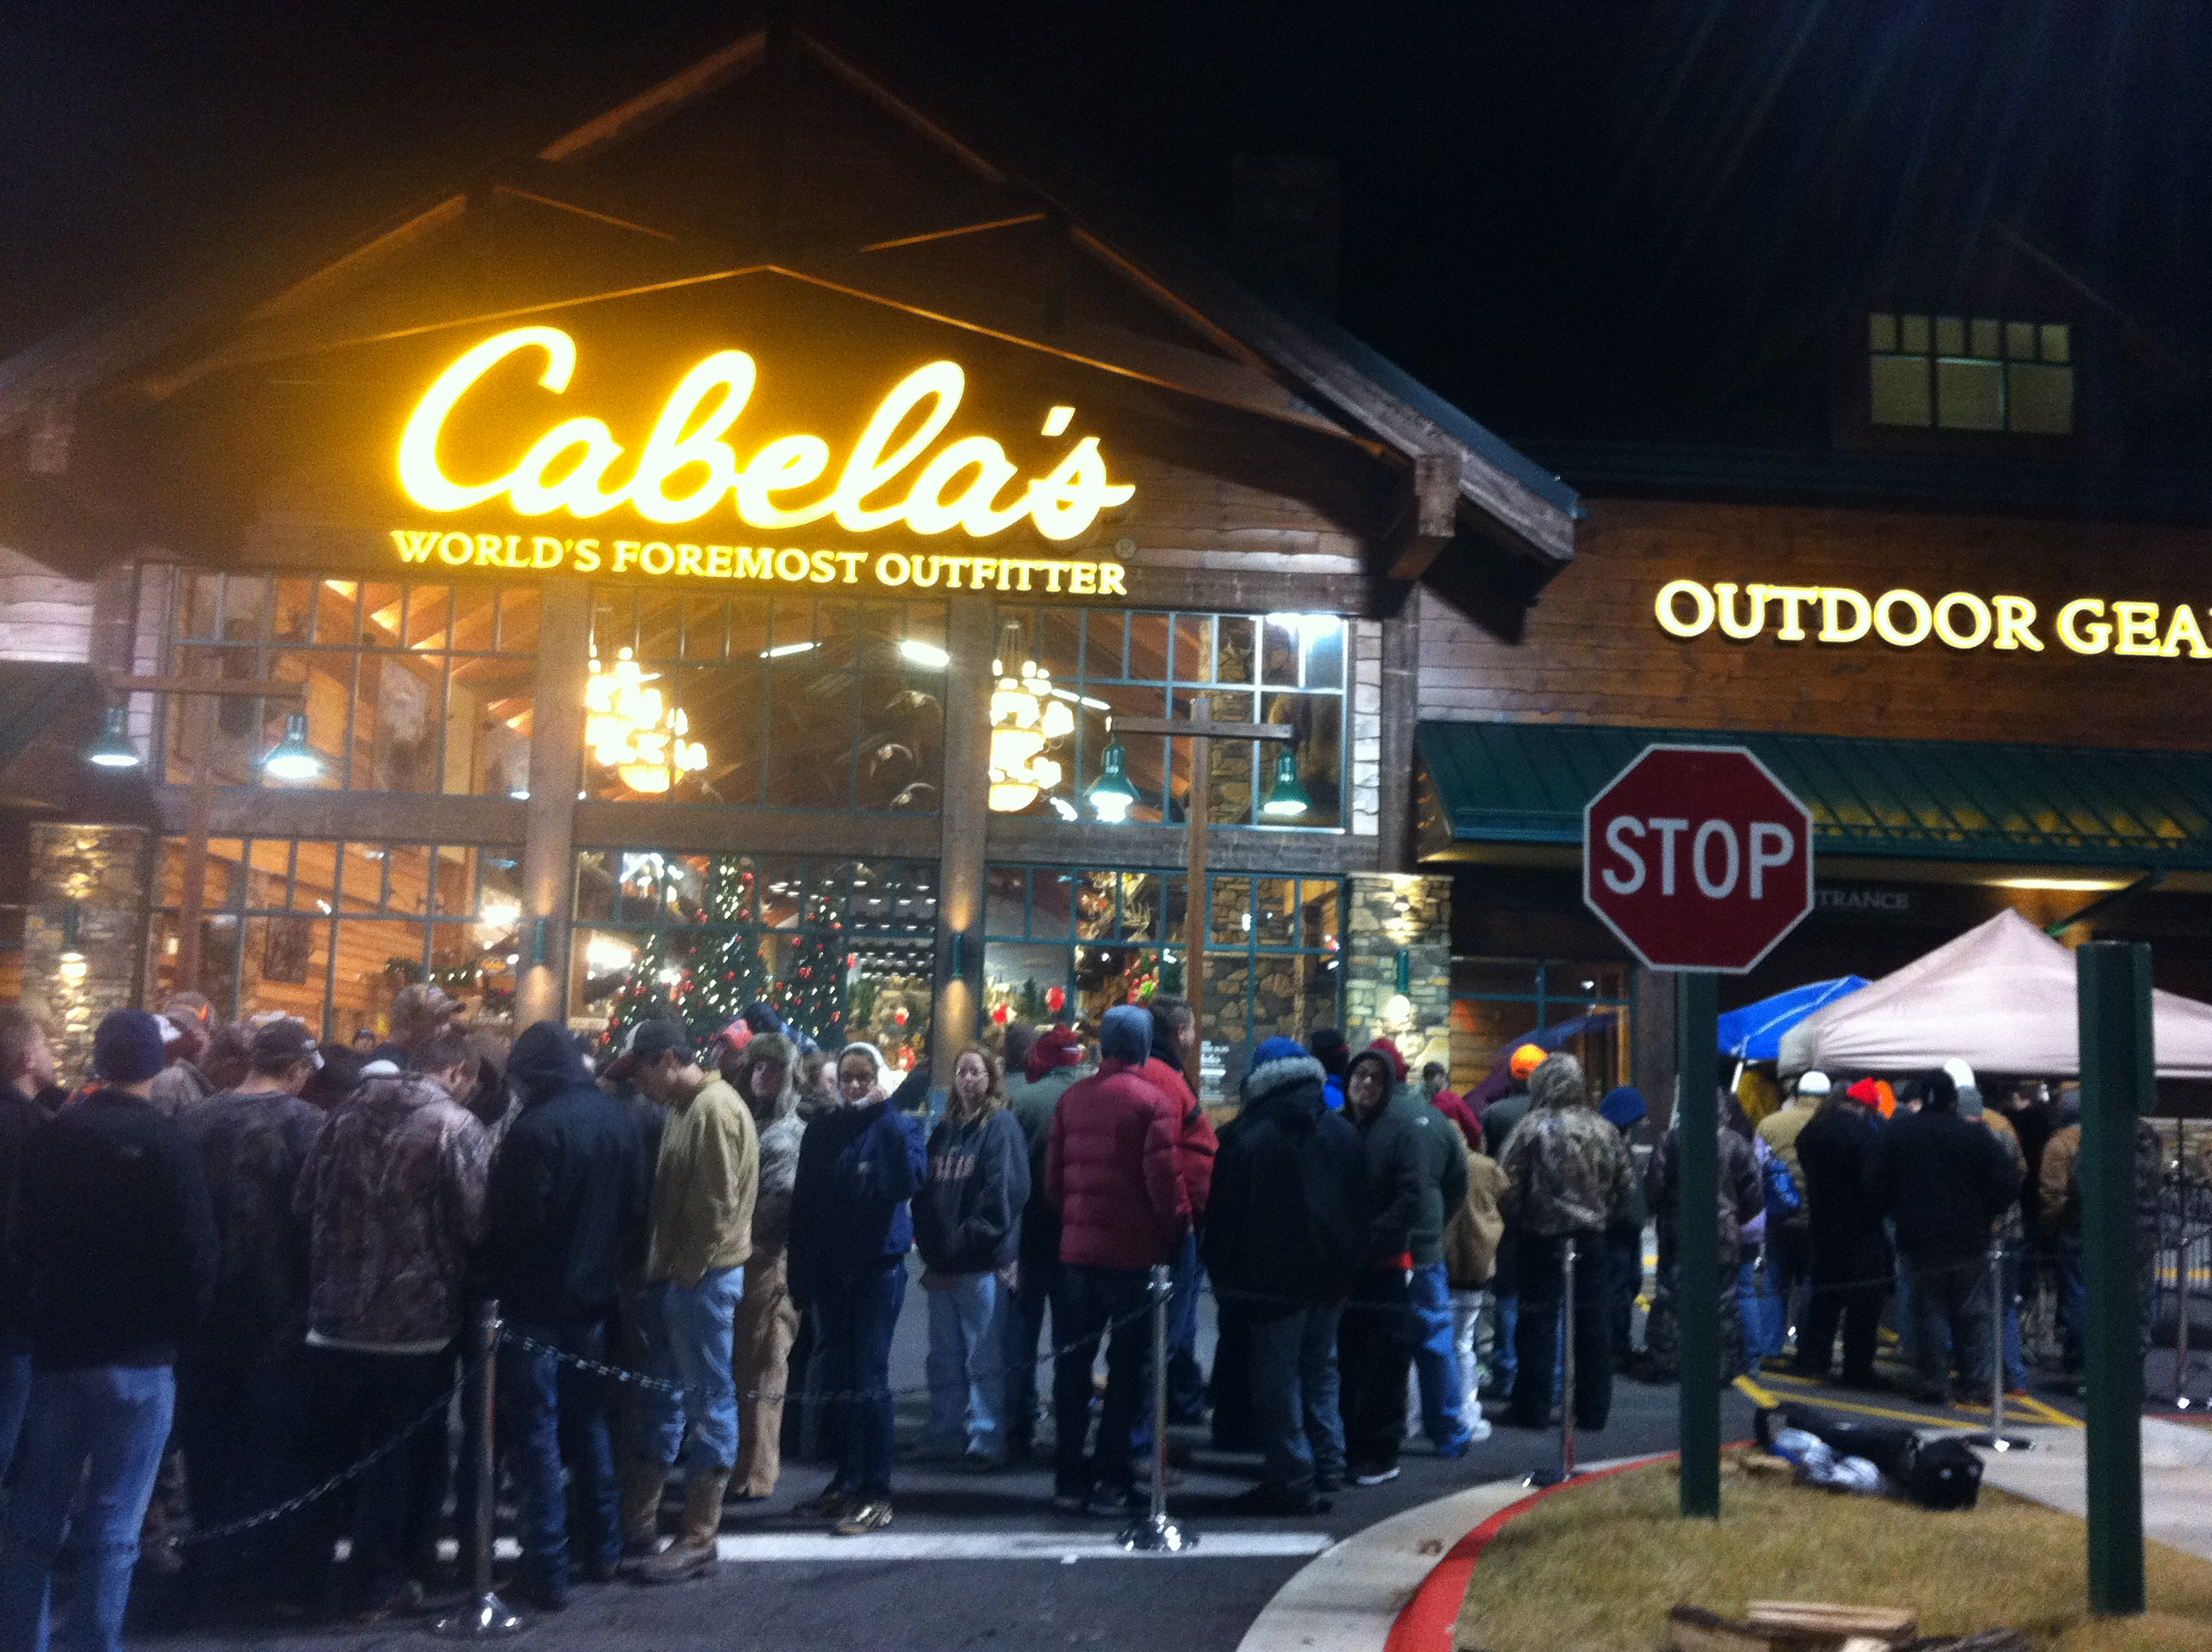 Shoppers line-up at Cabela's in Rogers awaiting special deal offers.